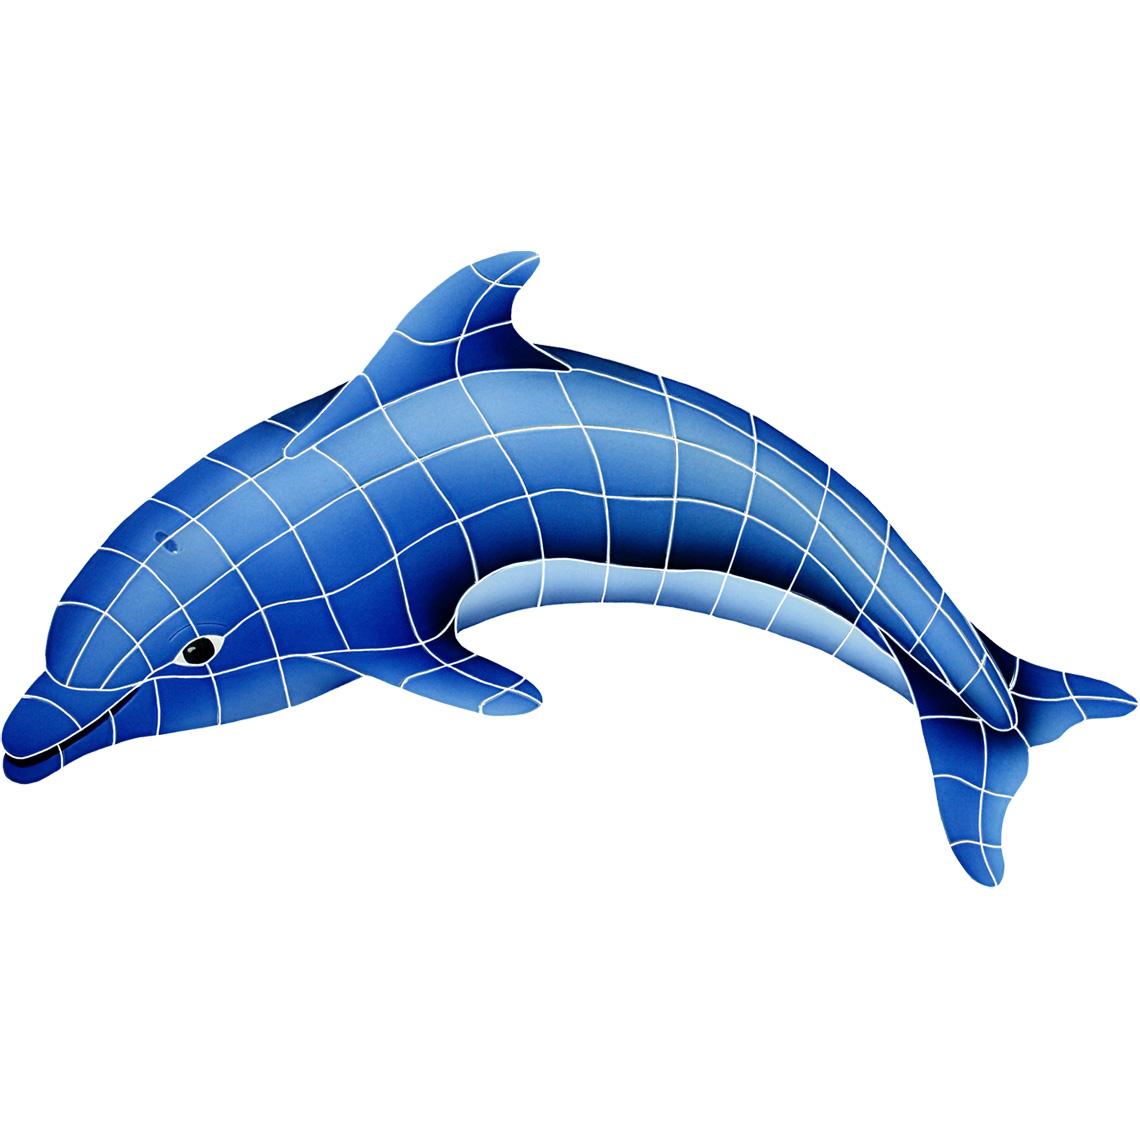 "Dolphin Left Large Ceramic Mosaic Swimming Pool Mural 24"" x 40"", 1 piece"